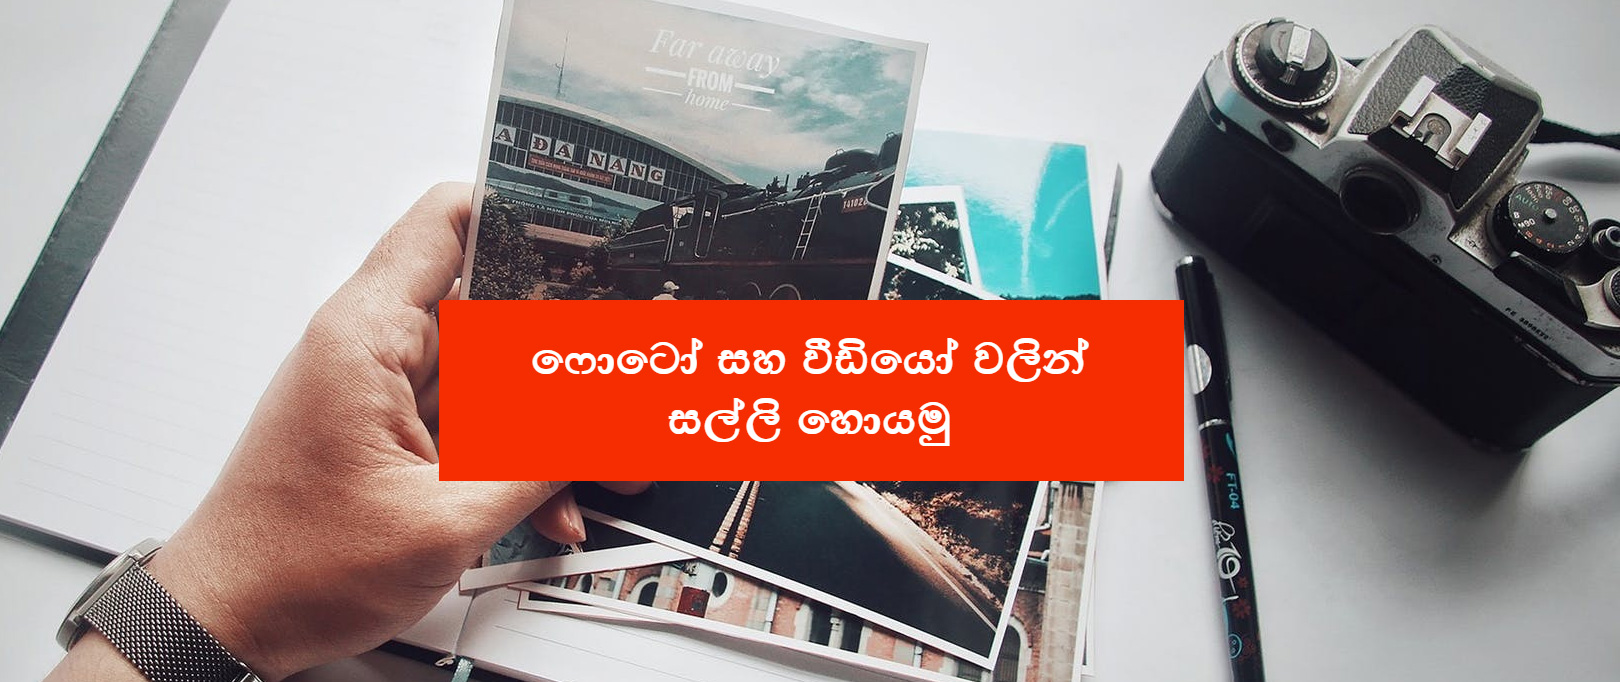 how-to-earn-money-by-uploading-photos-and-videos-to-shutterstock-website-in-sri-lanka-sinhala